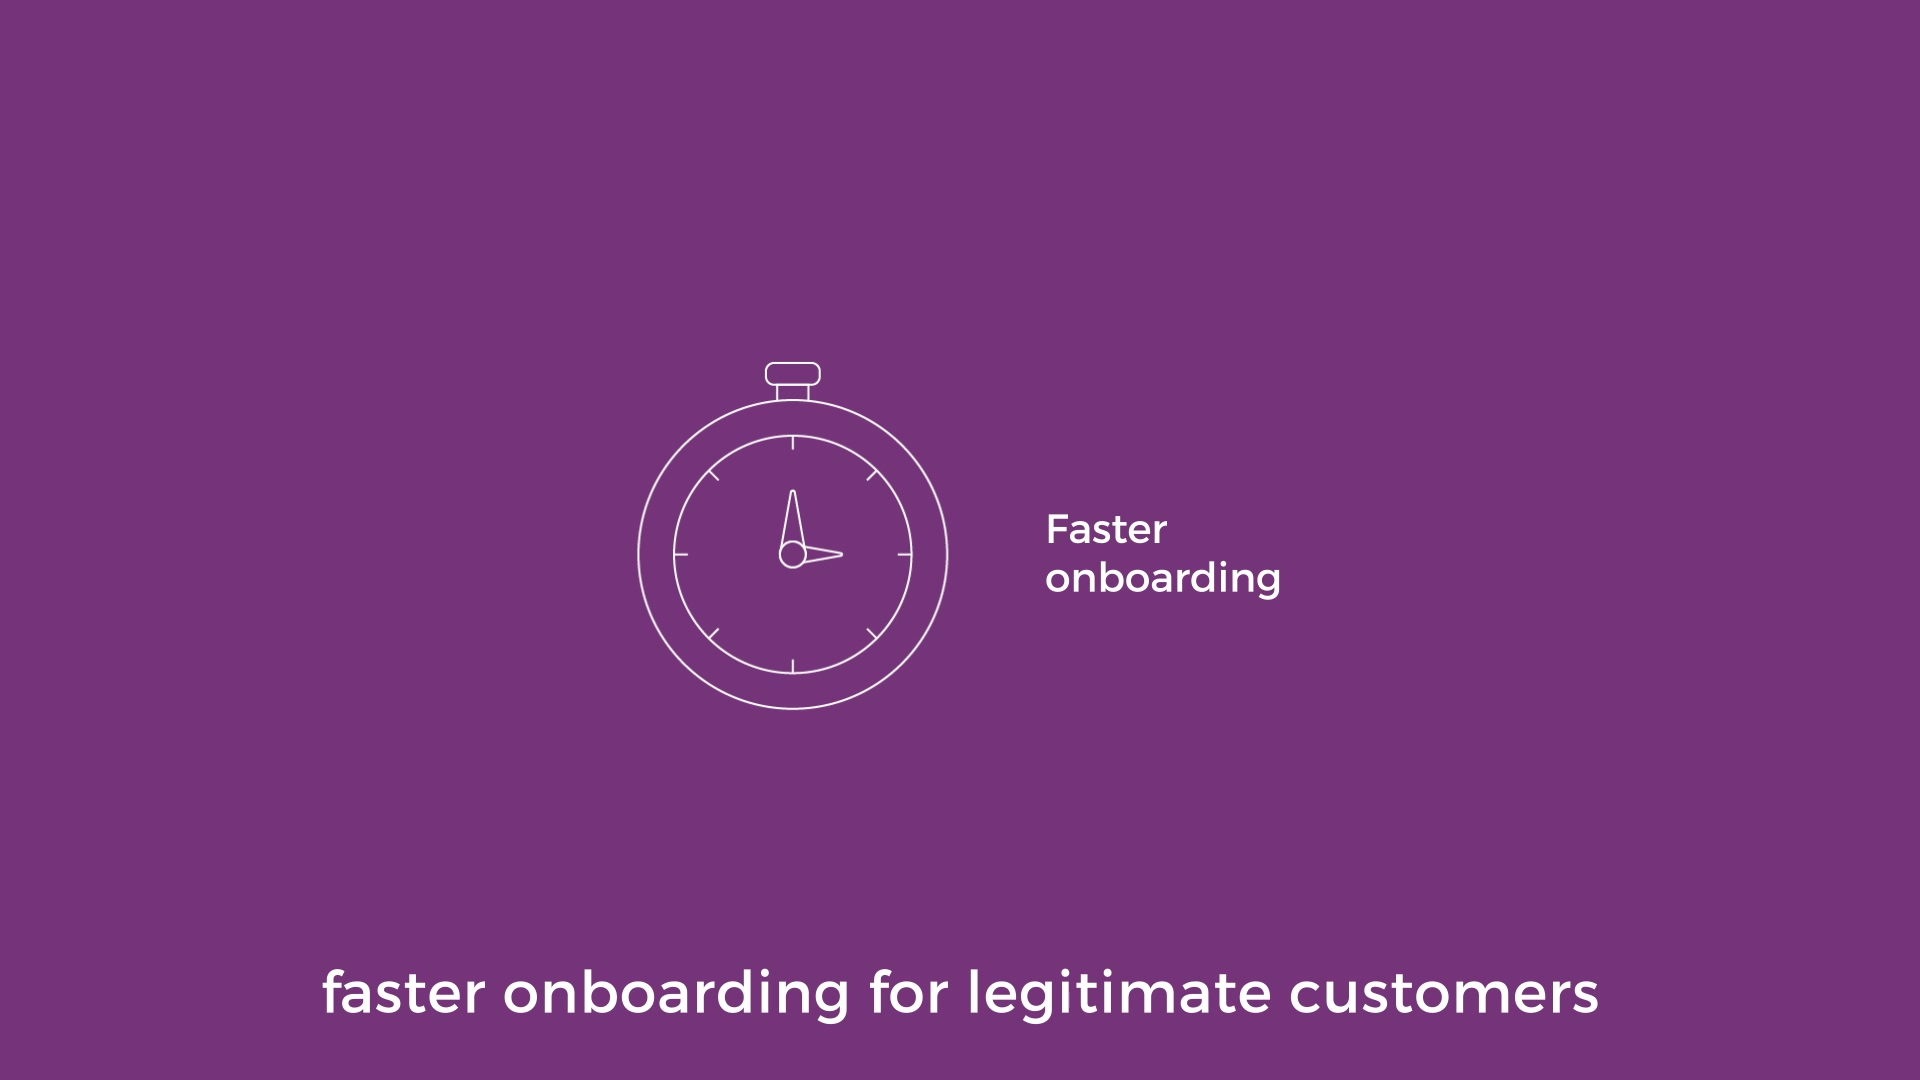 [US] Onboarding with subtitles